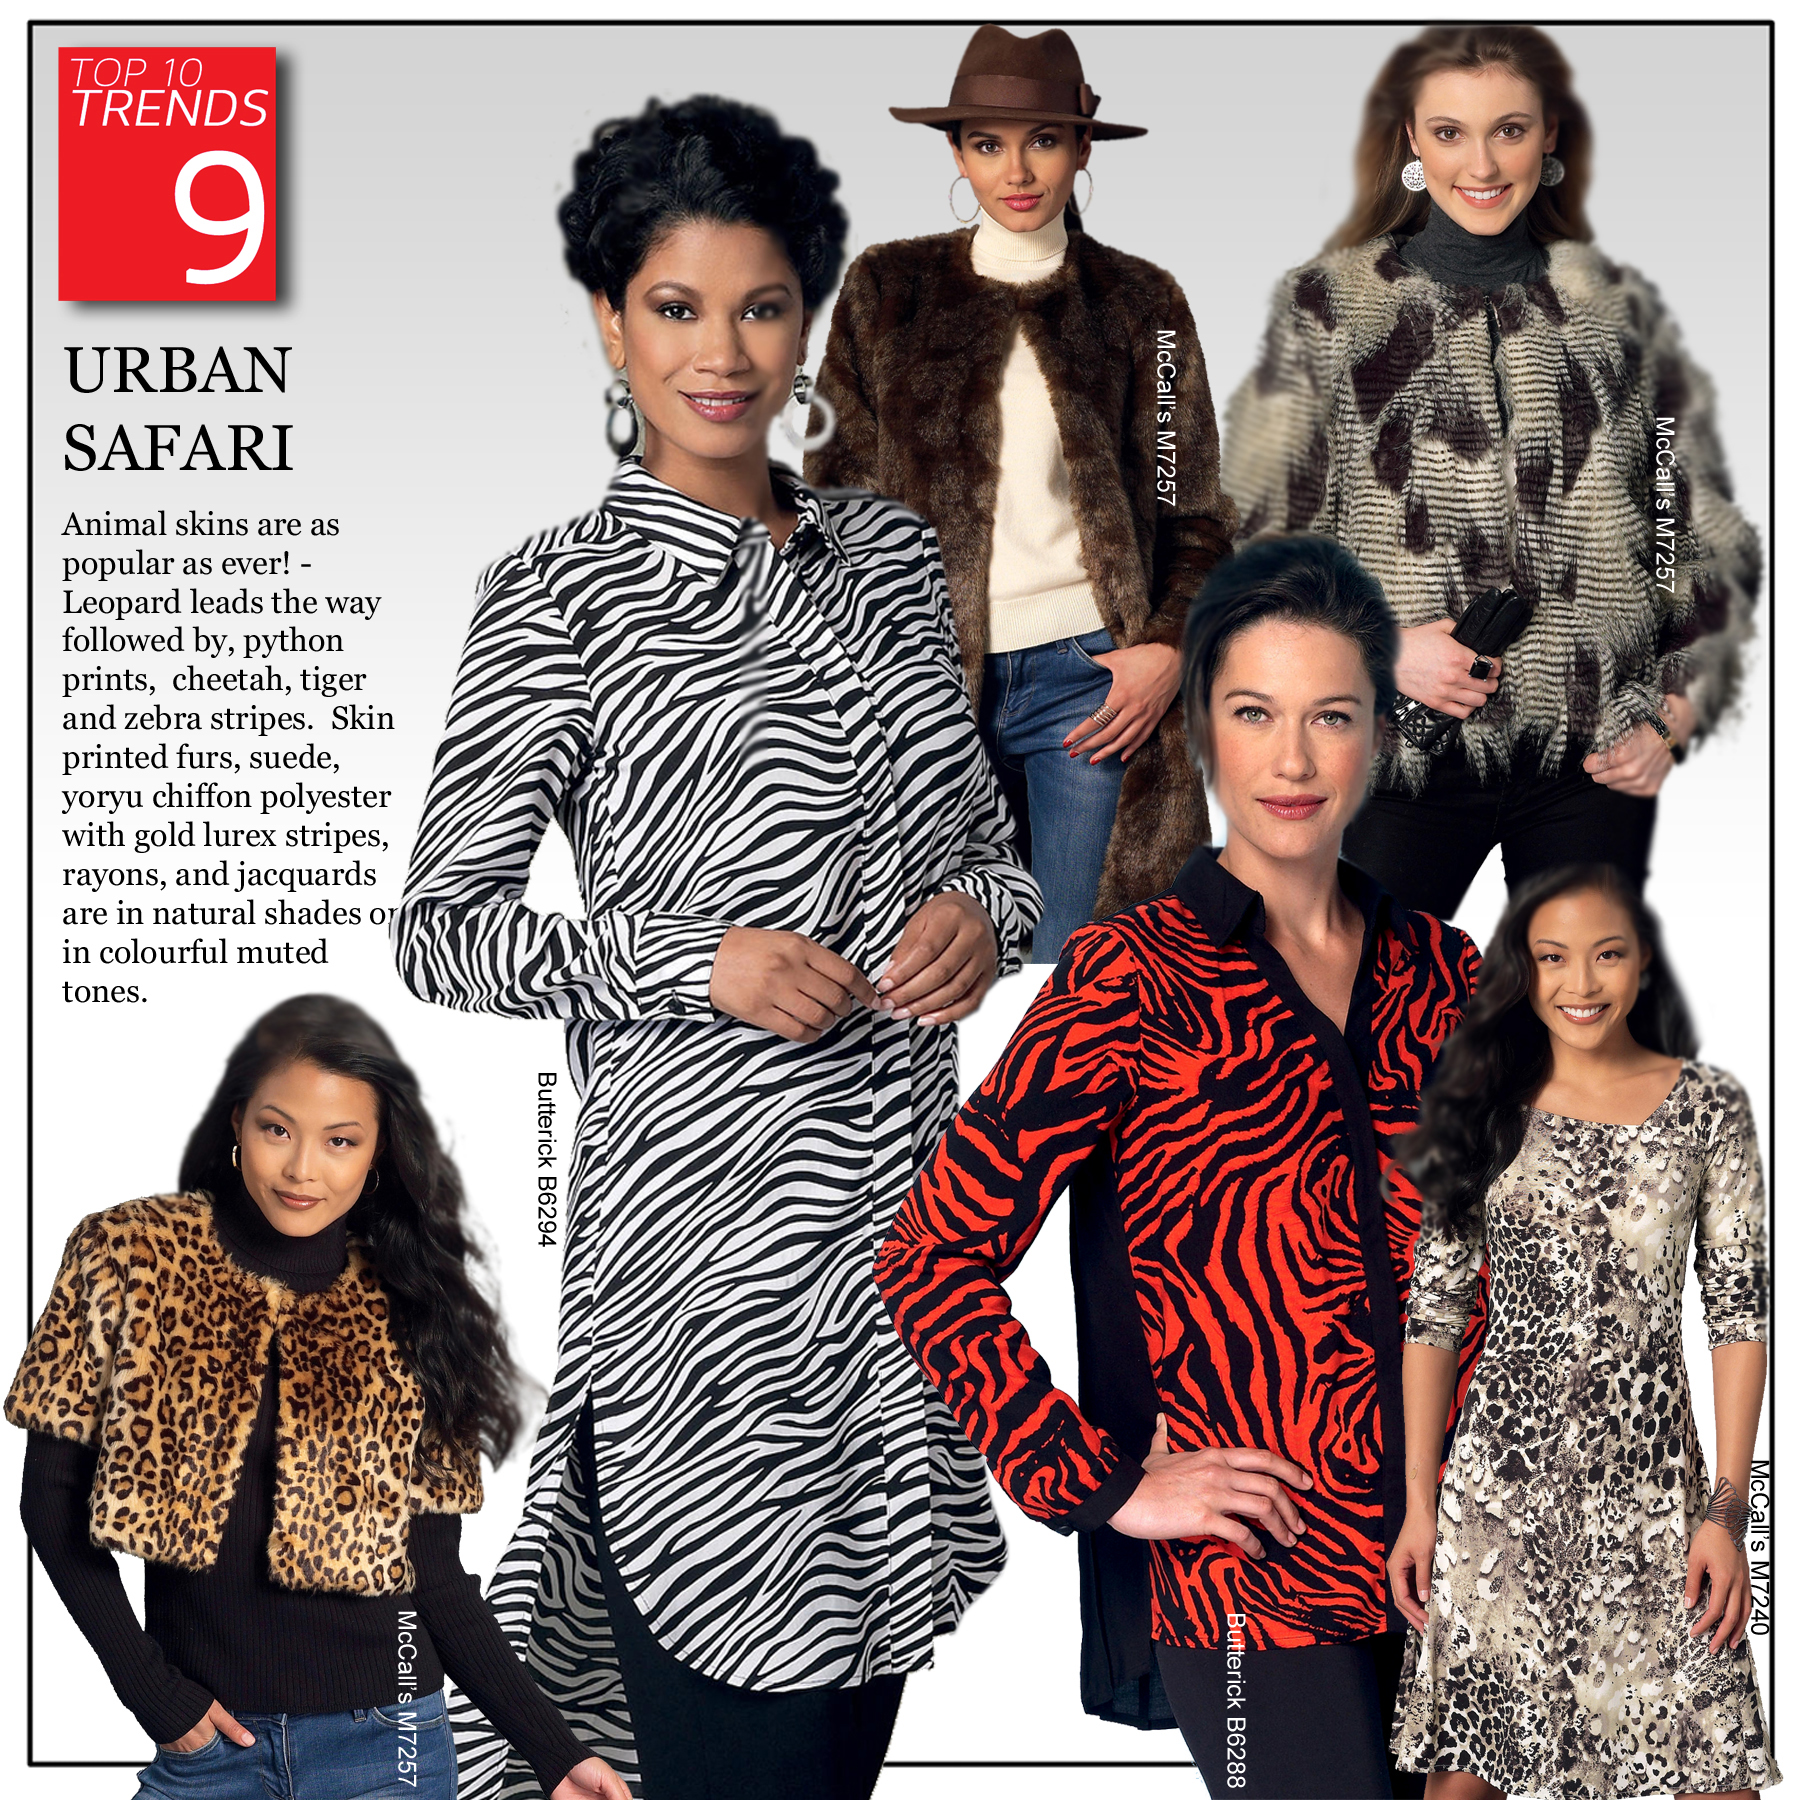 Trend 9 - Urban Safari